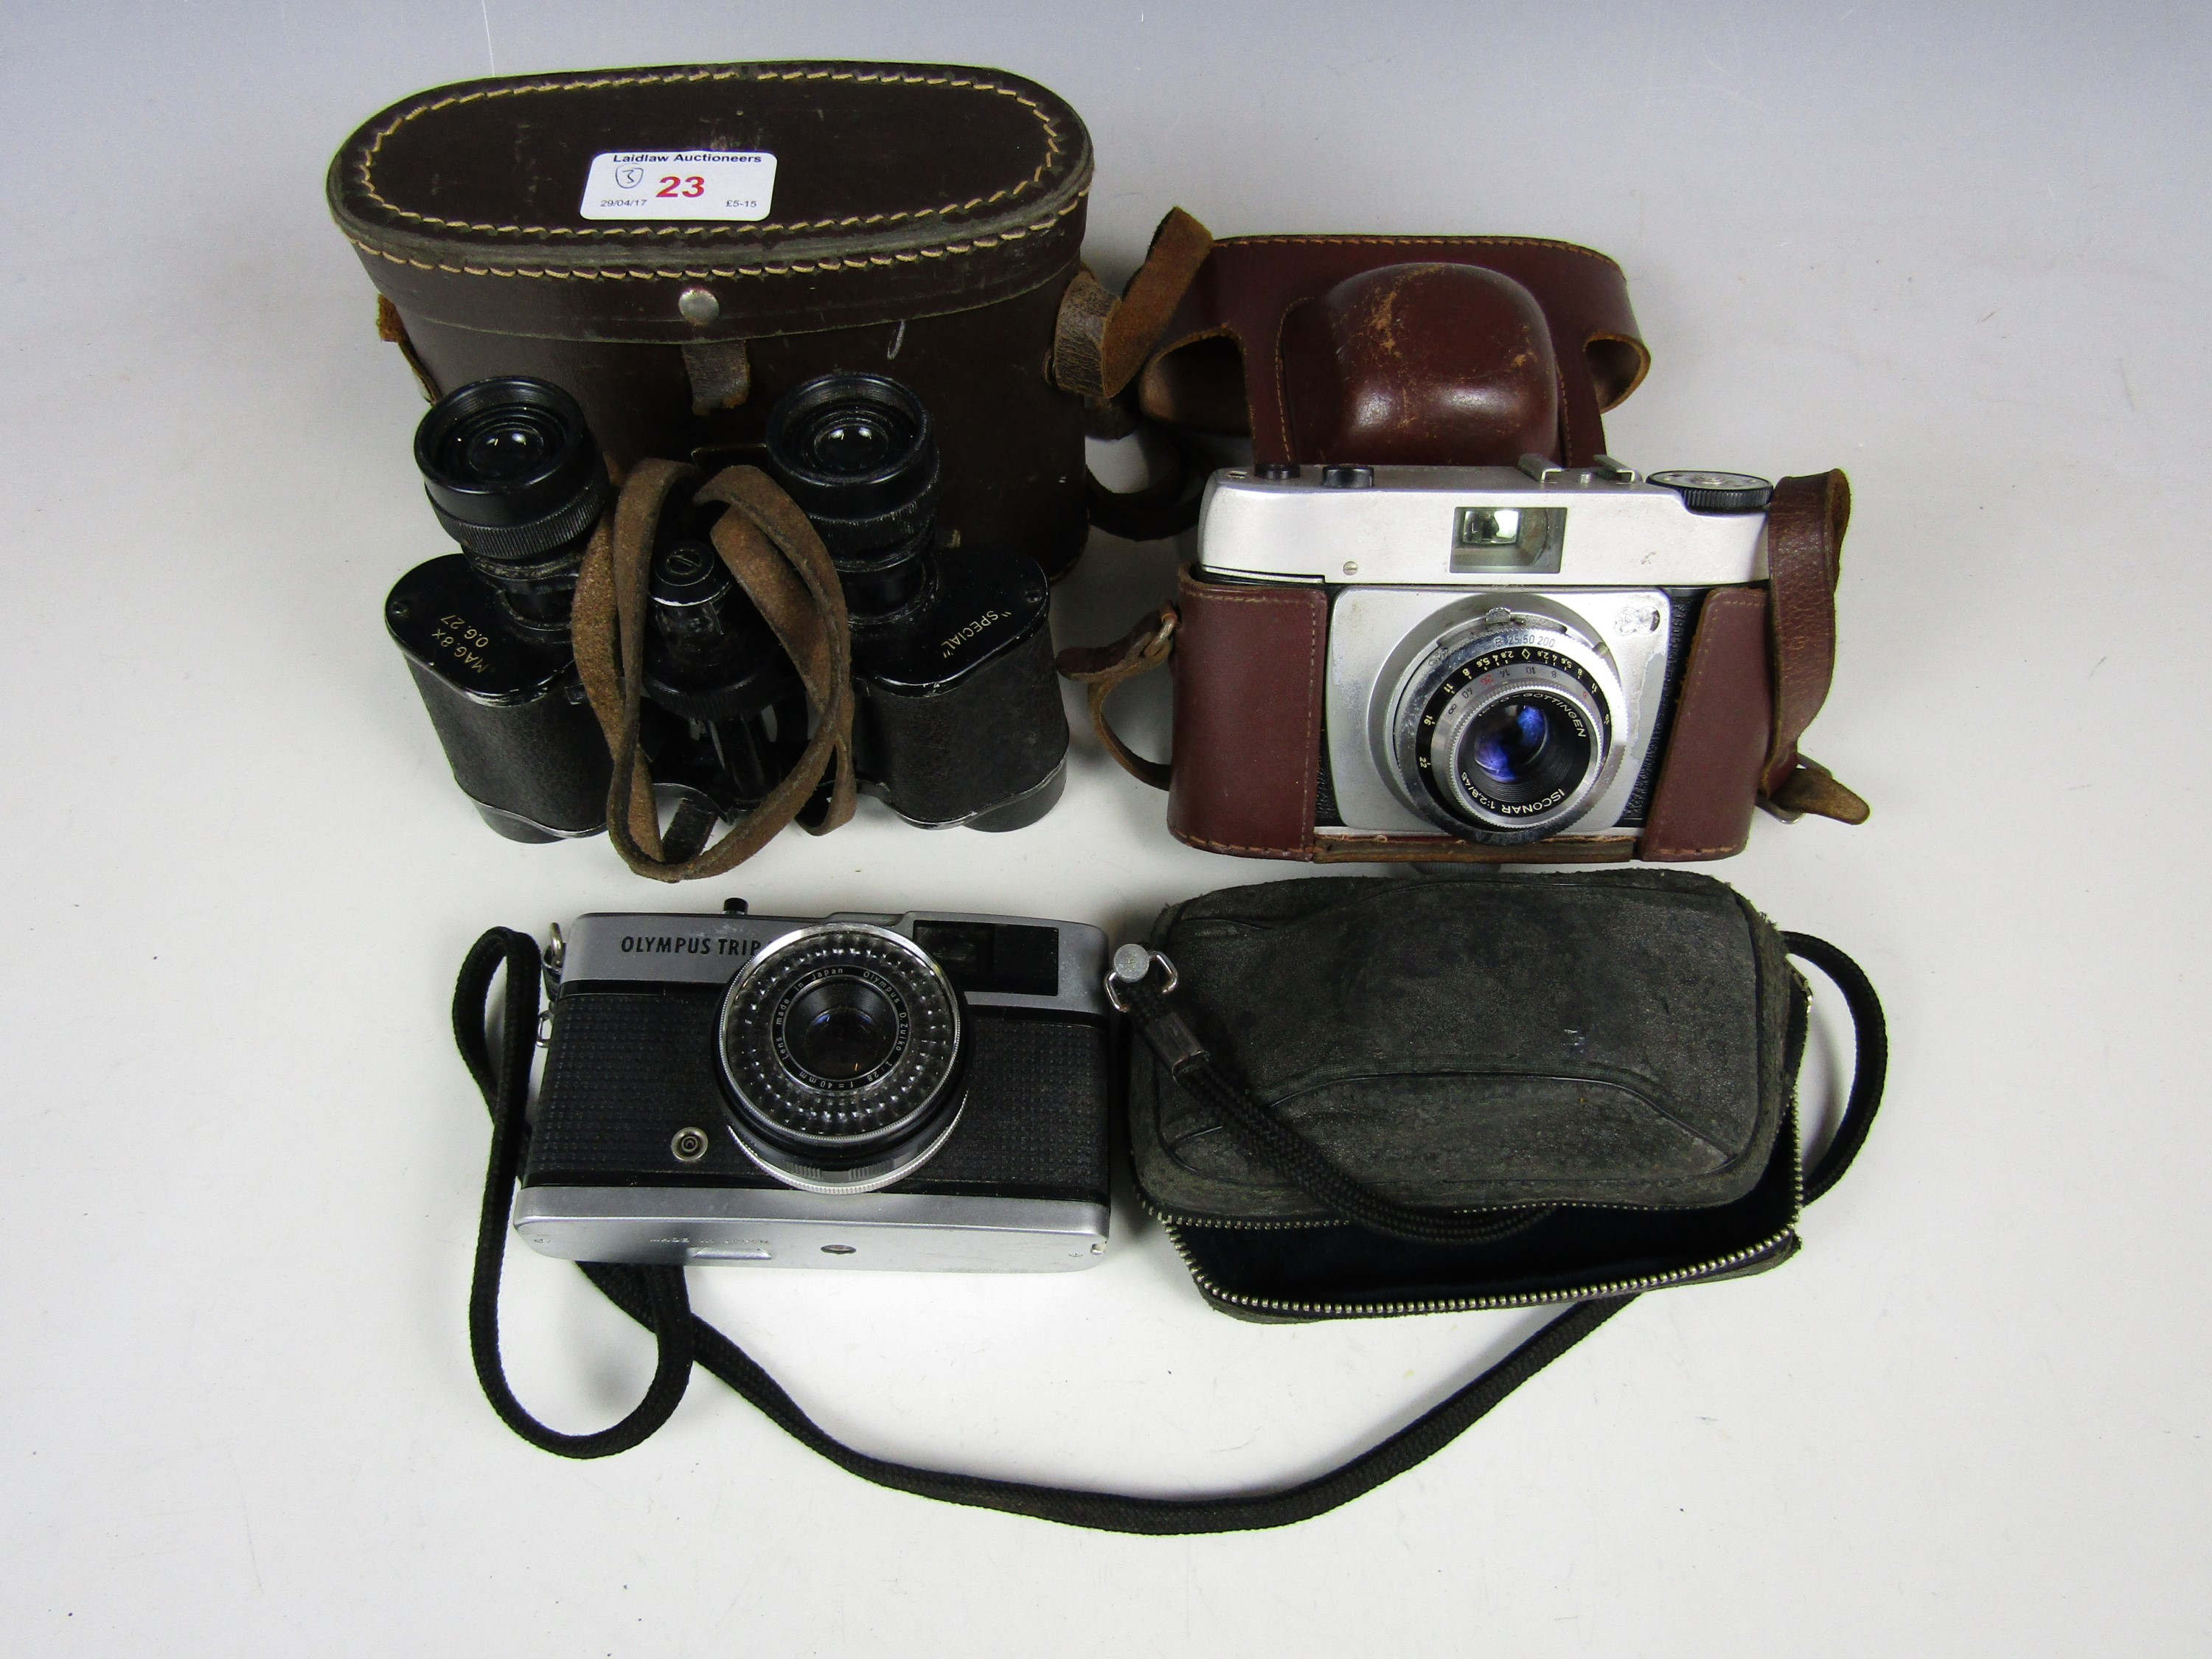 Lot 23 - A cased pair of French binoculars together with two vintage cameras